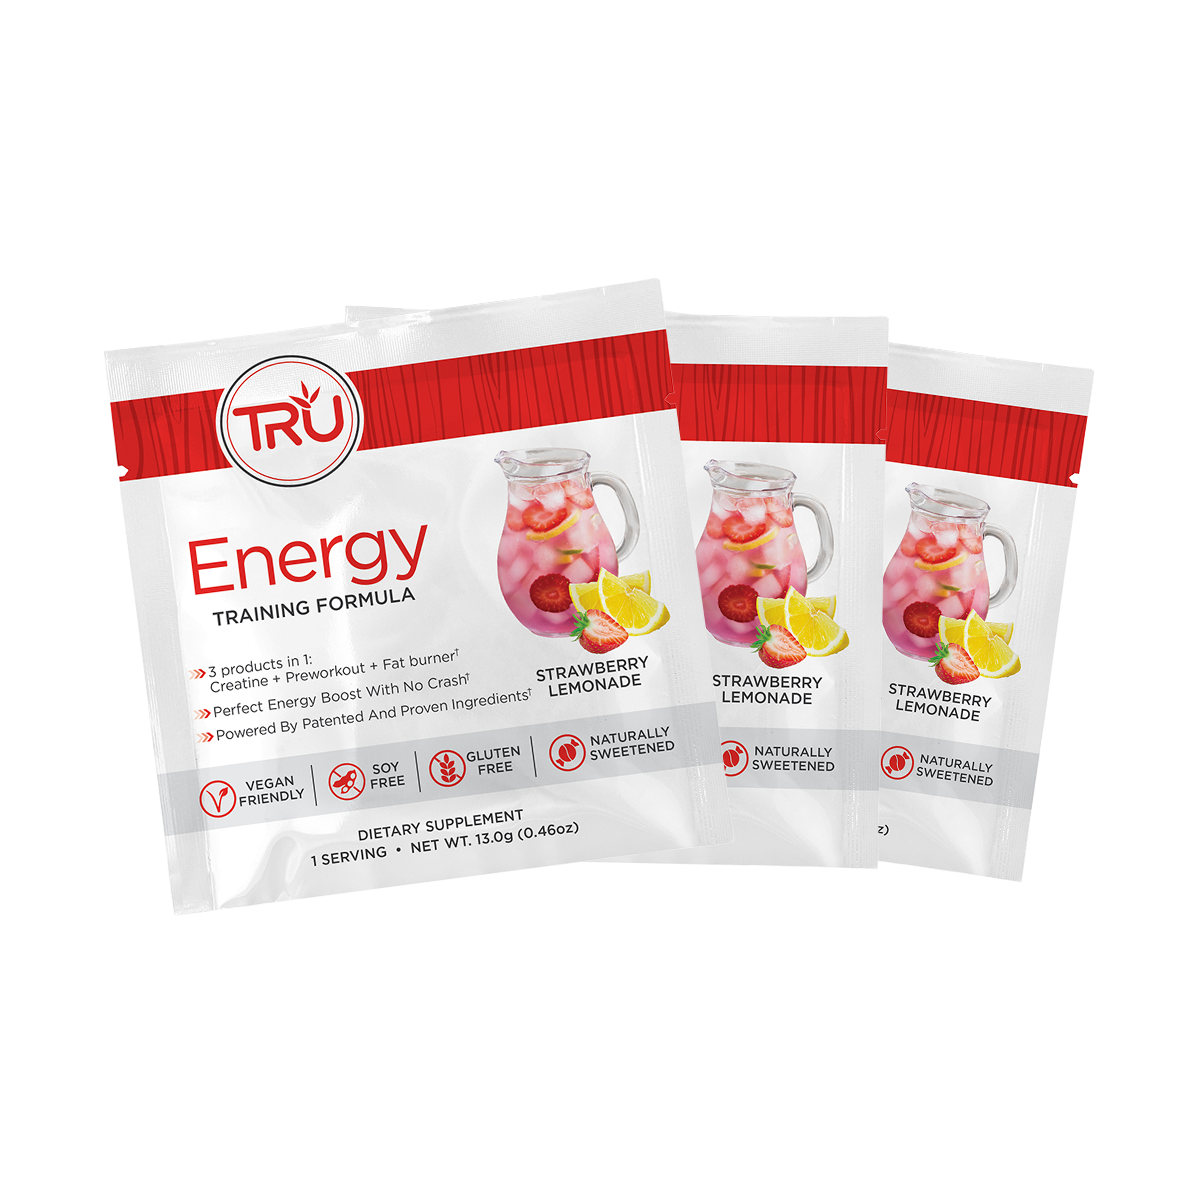 TRU ENERGY PREWORKOUT SAMPLER - 3 Single Serving Packets